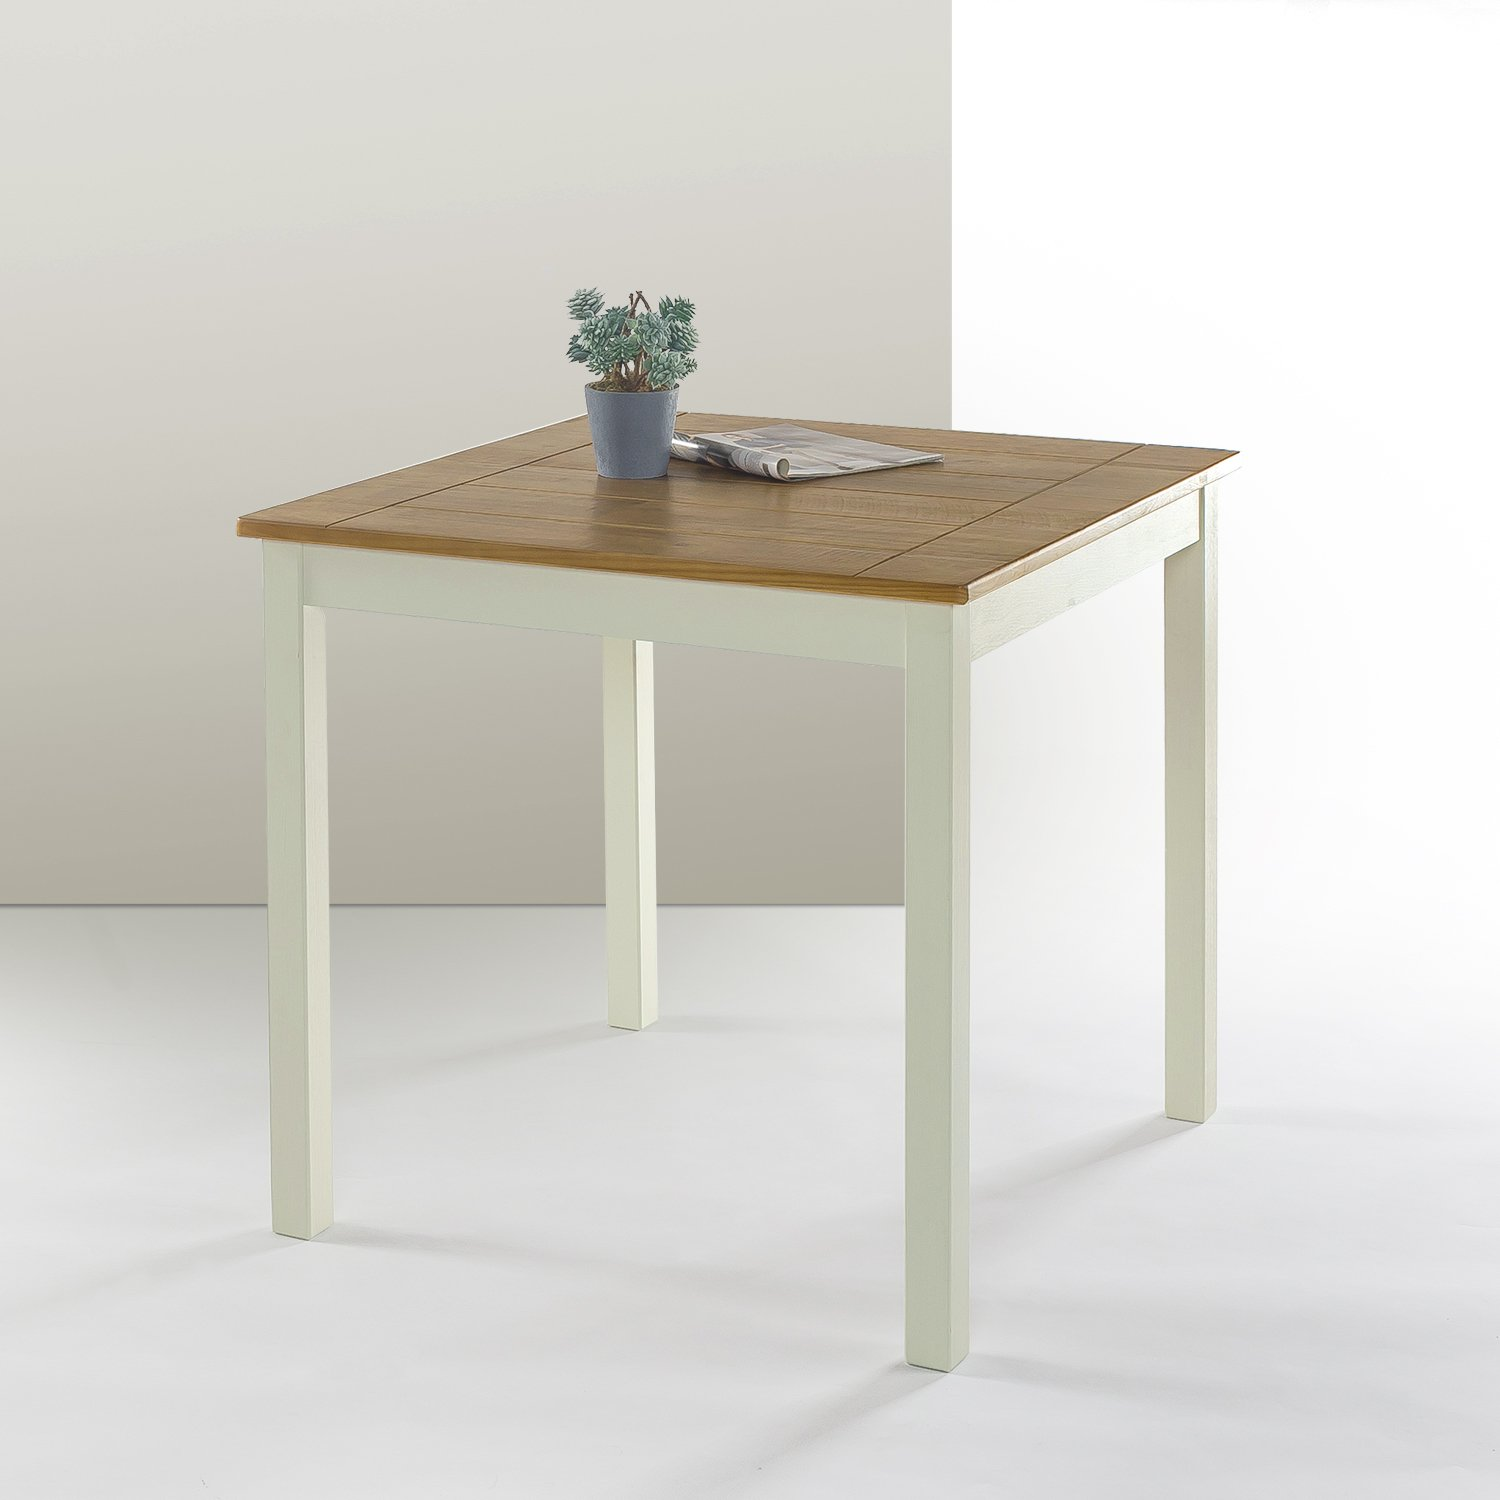 Zinus farmhouse square wood dining table